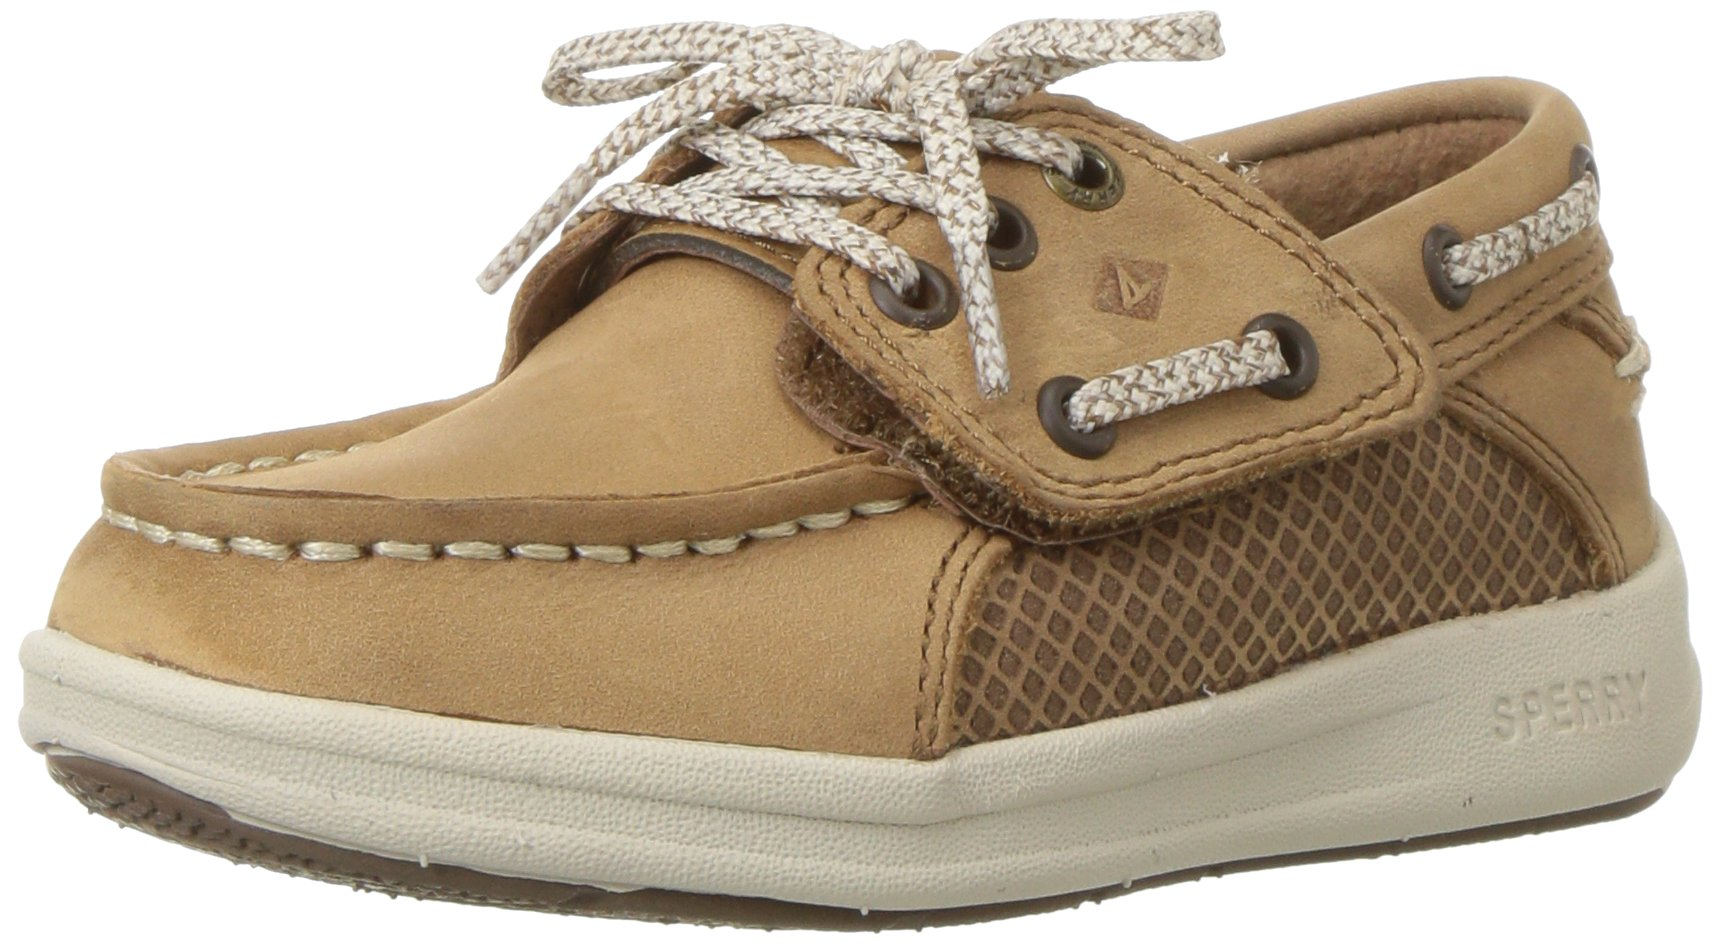 Sperry Gamefish A/C Boat Shoe (Toddler/Little Kid), Dark Tan, 6.5 Wide US Toddler by Sperry